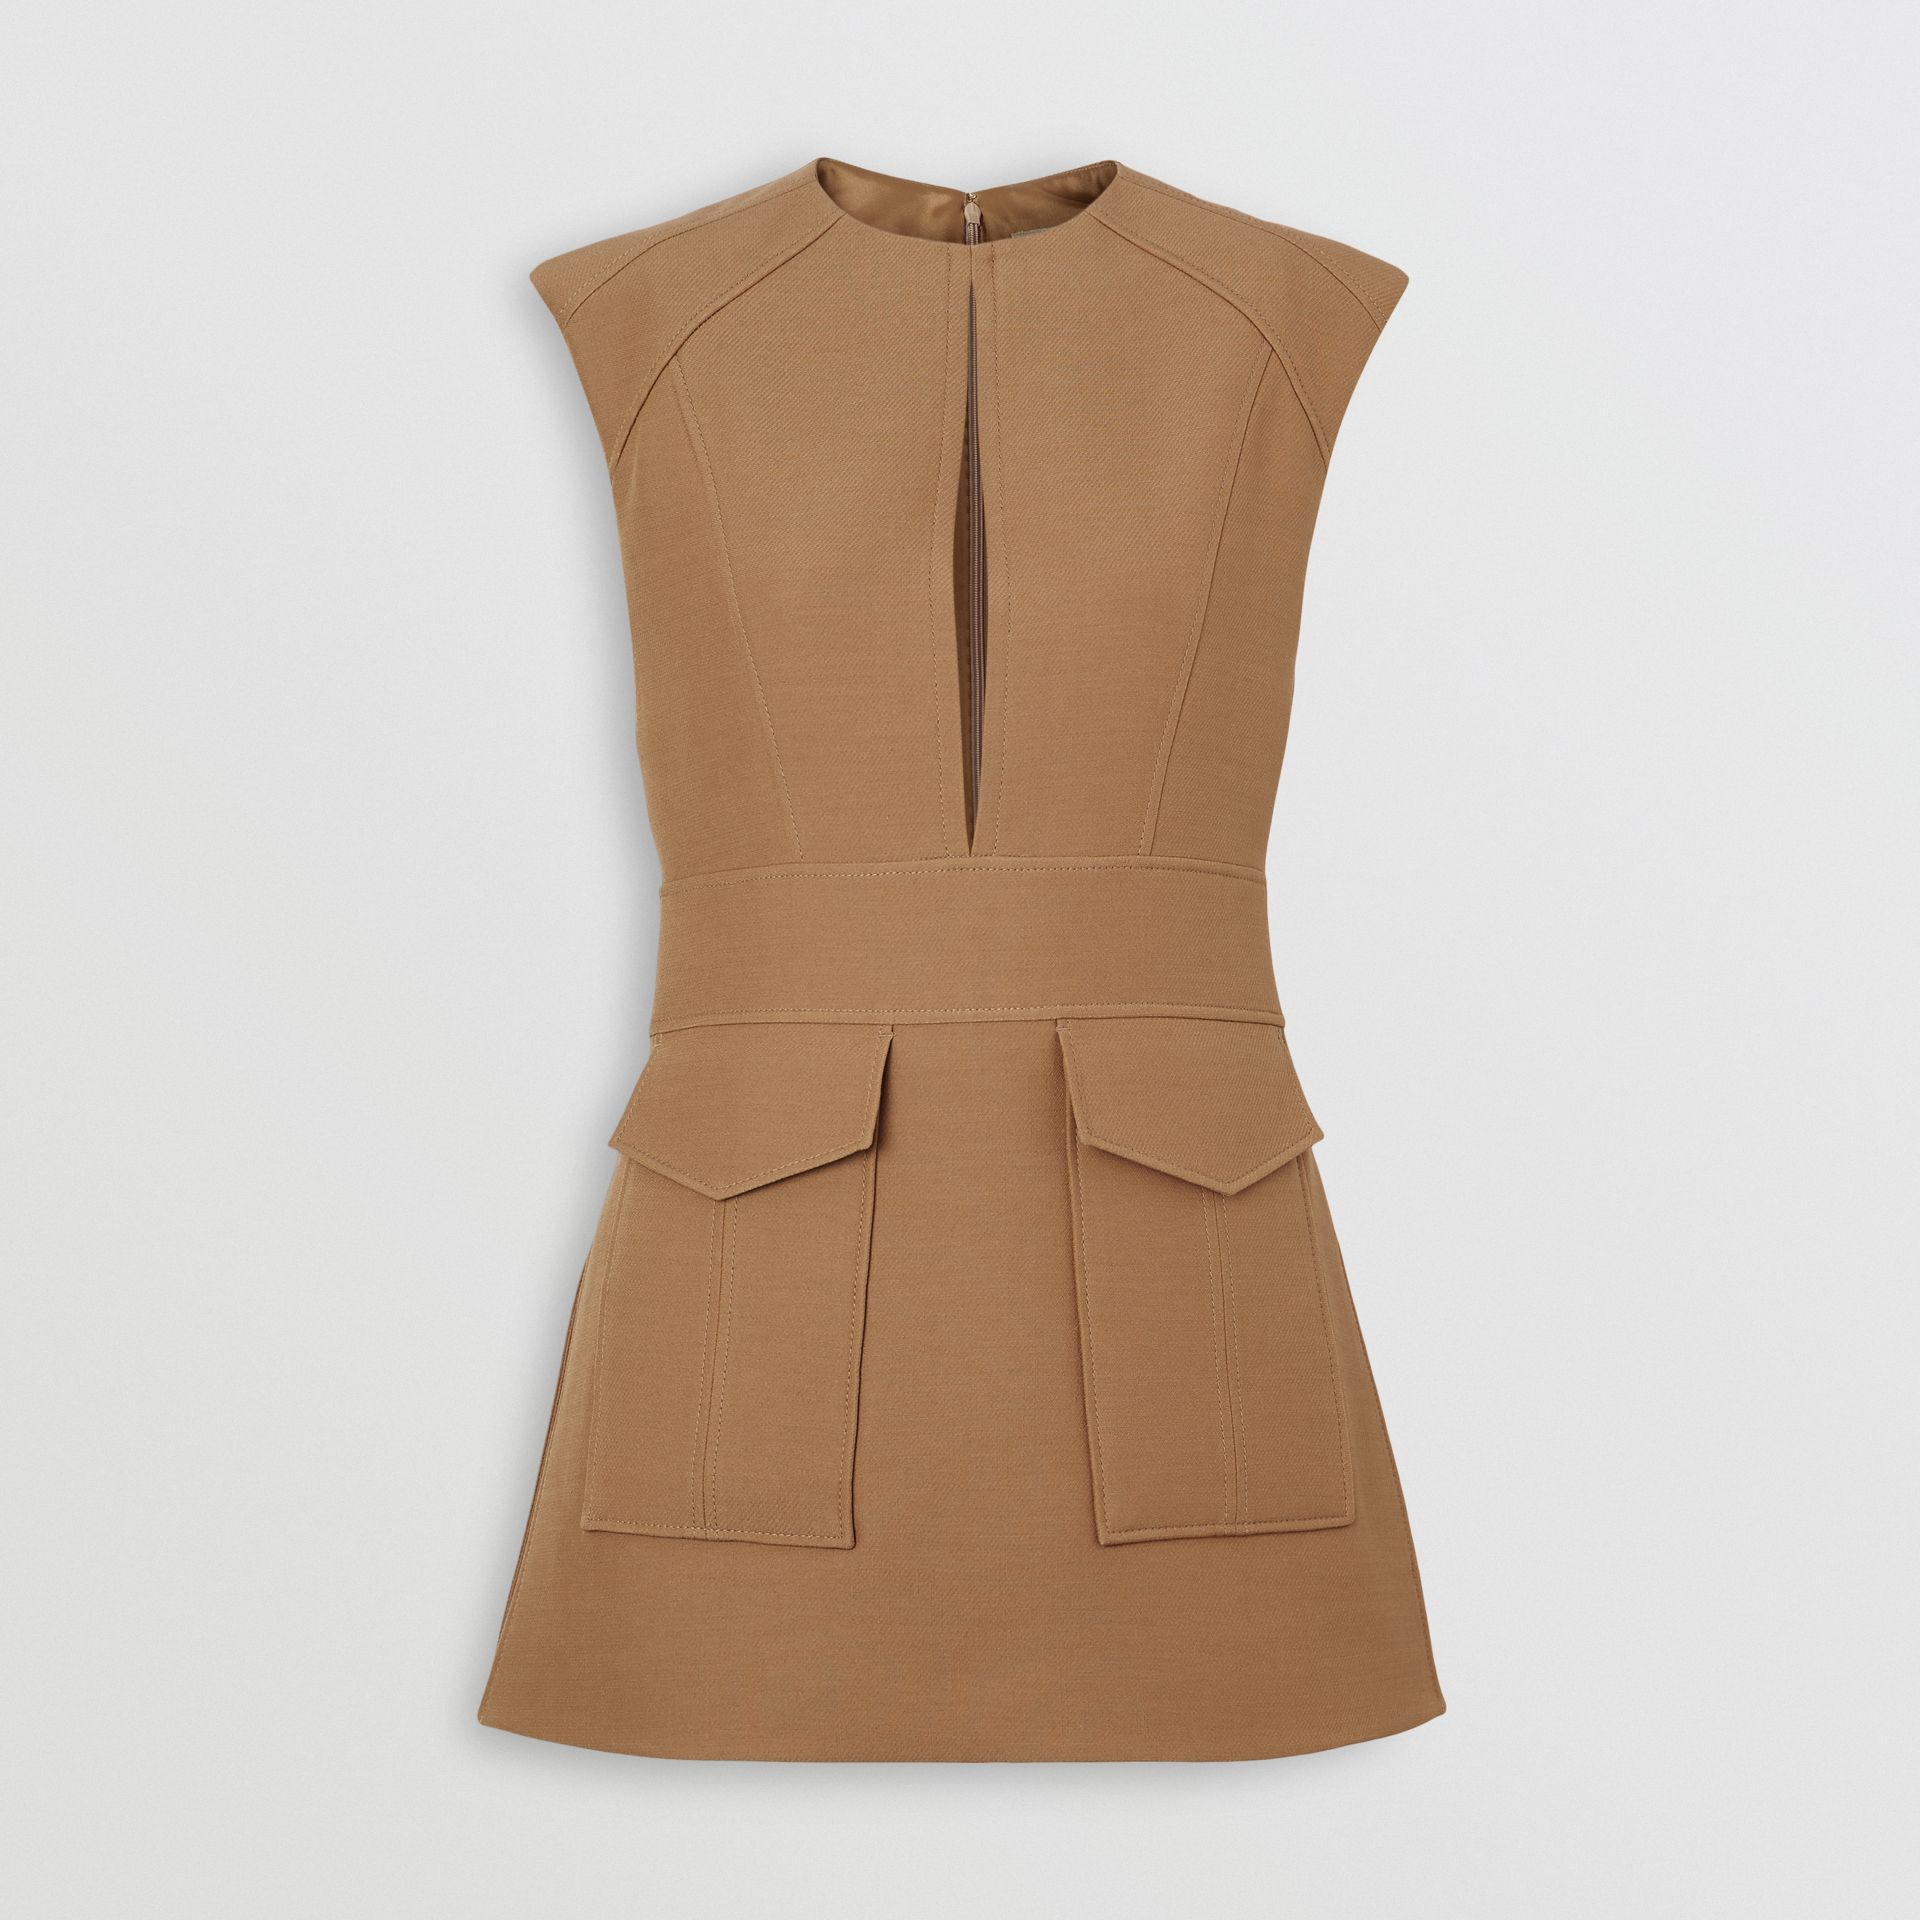 Keyhole Detail Sleeveless Wool Silk Top in Camel - Women | Burberry Canada - gallery image 3